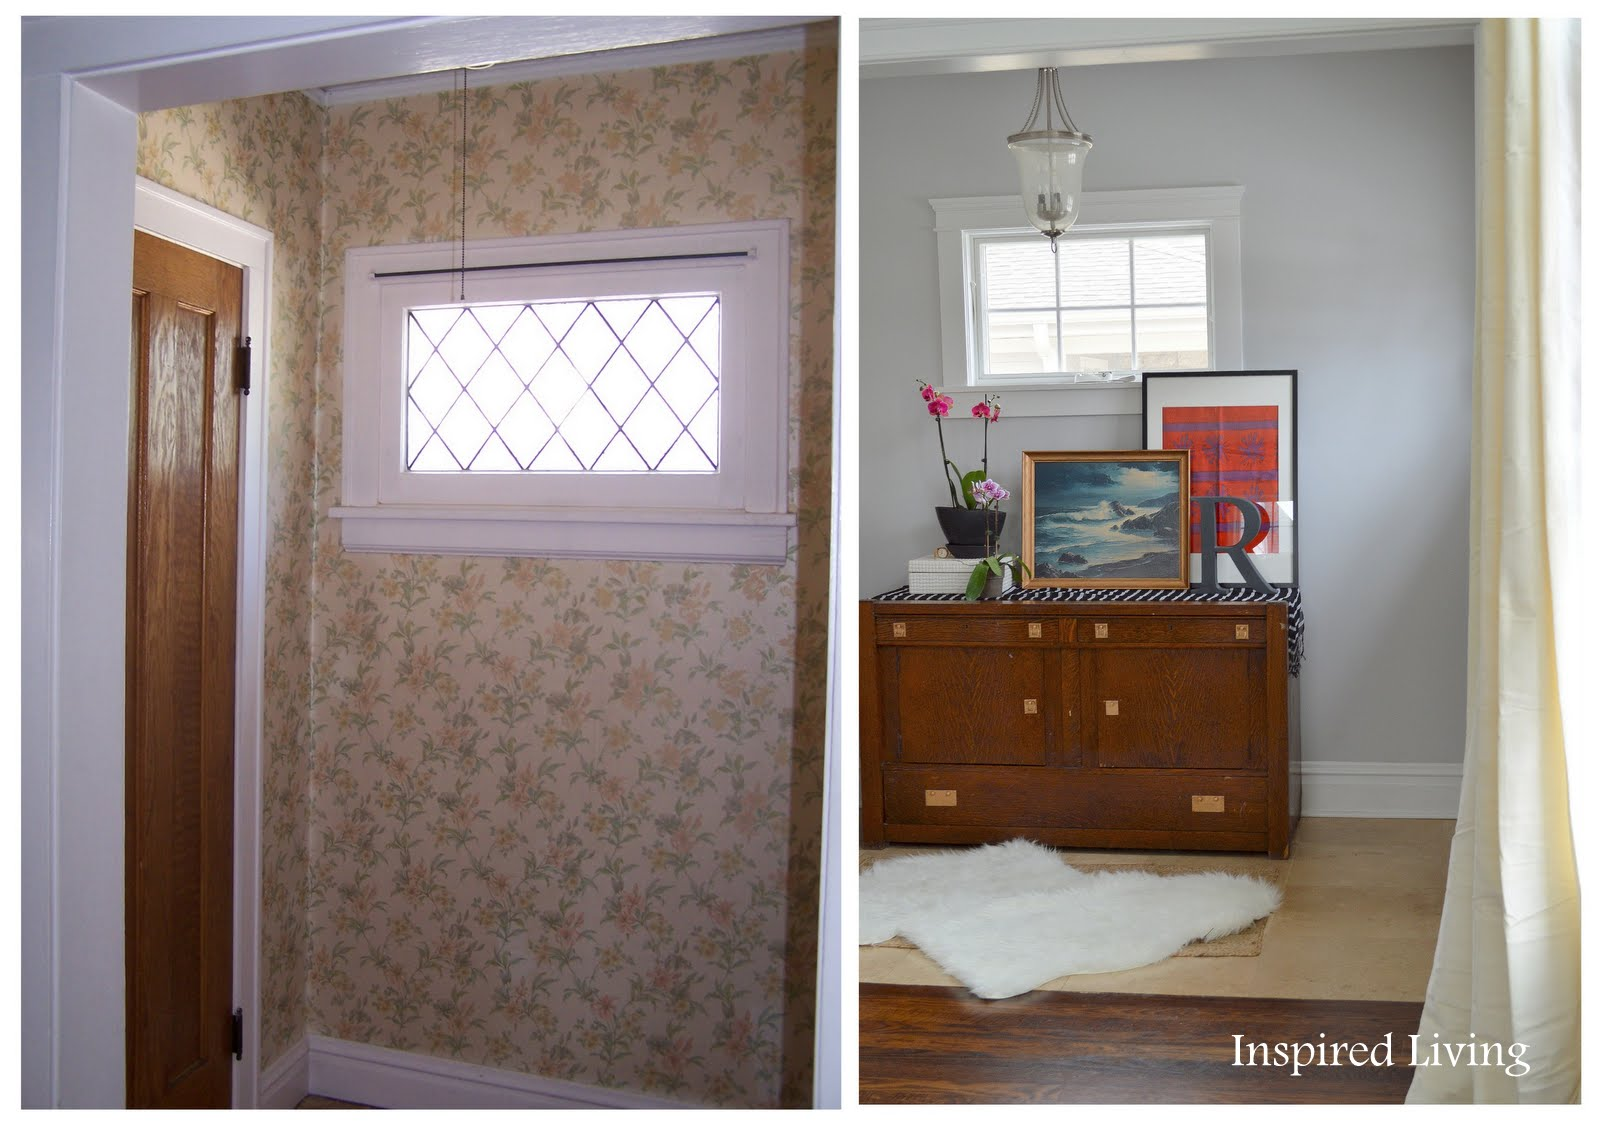 Inspired Living: Living Room Before and Afters